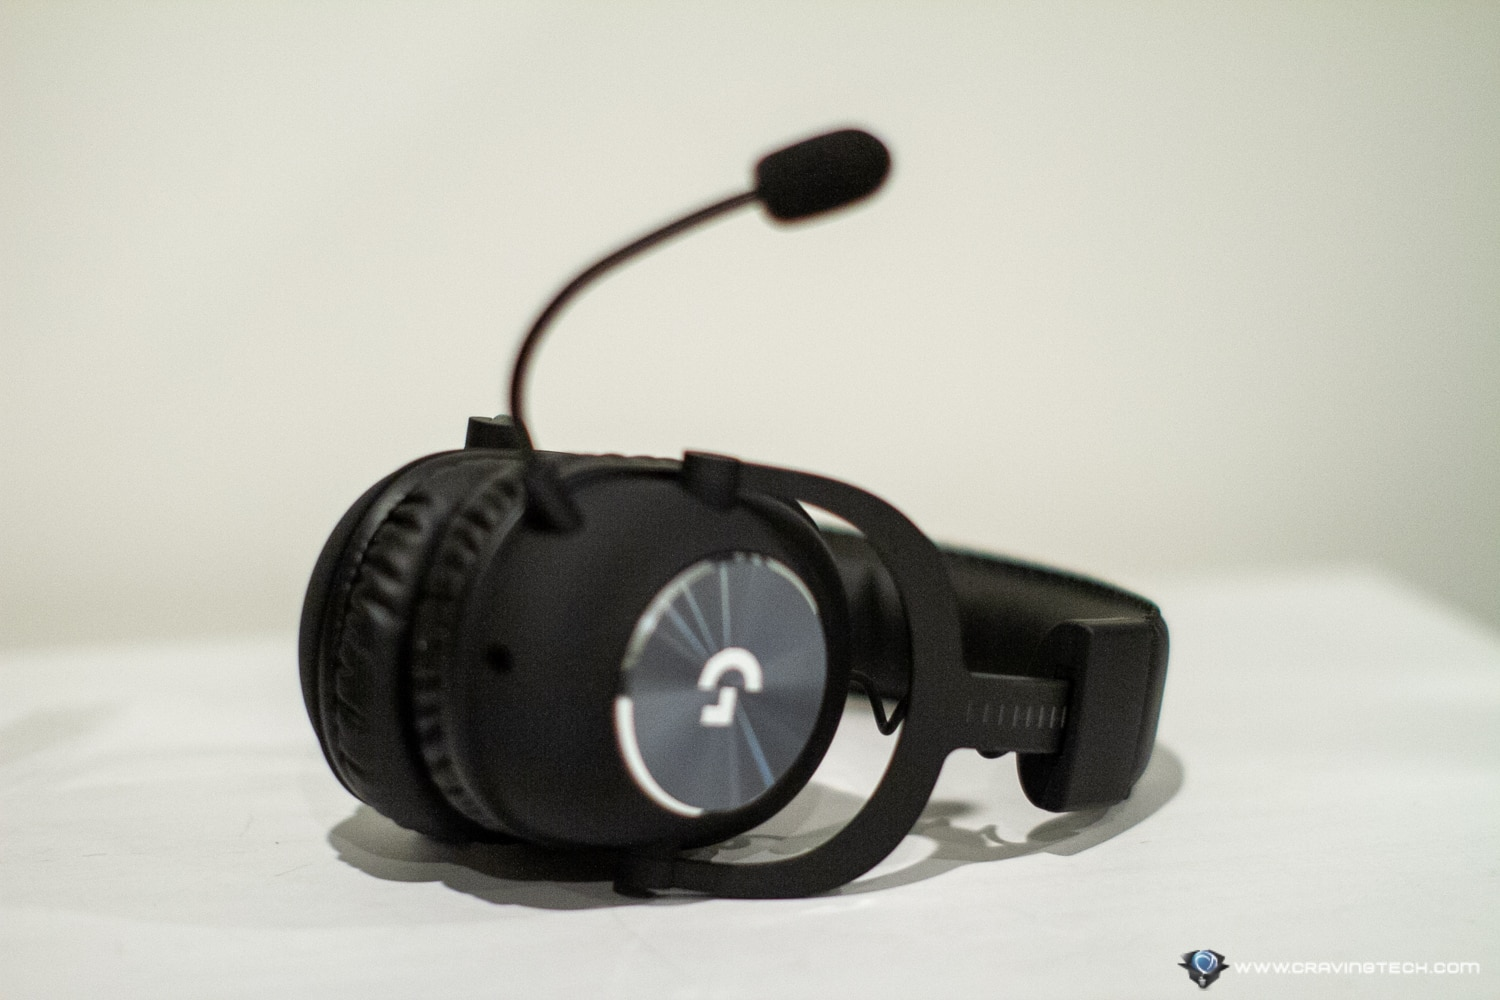 The best gaming headset with best microphone? Logitech PRO X